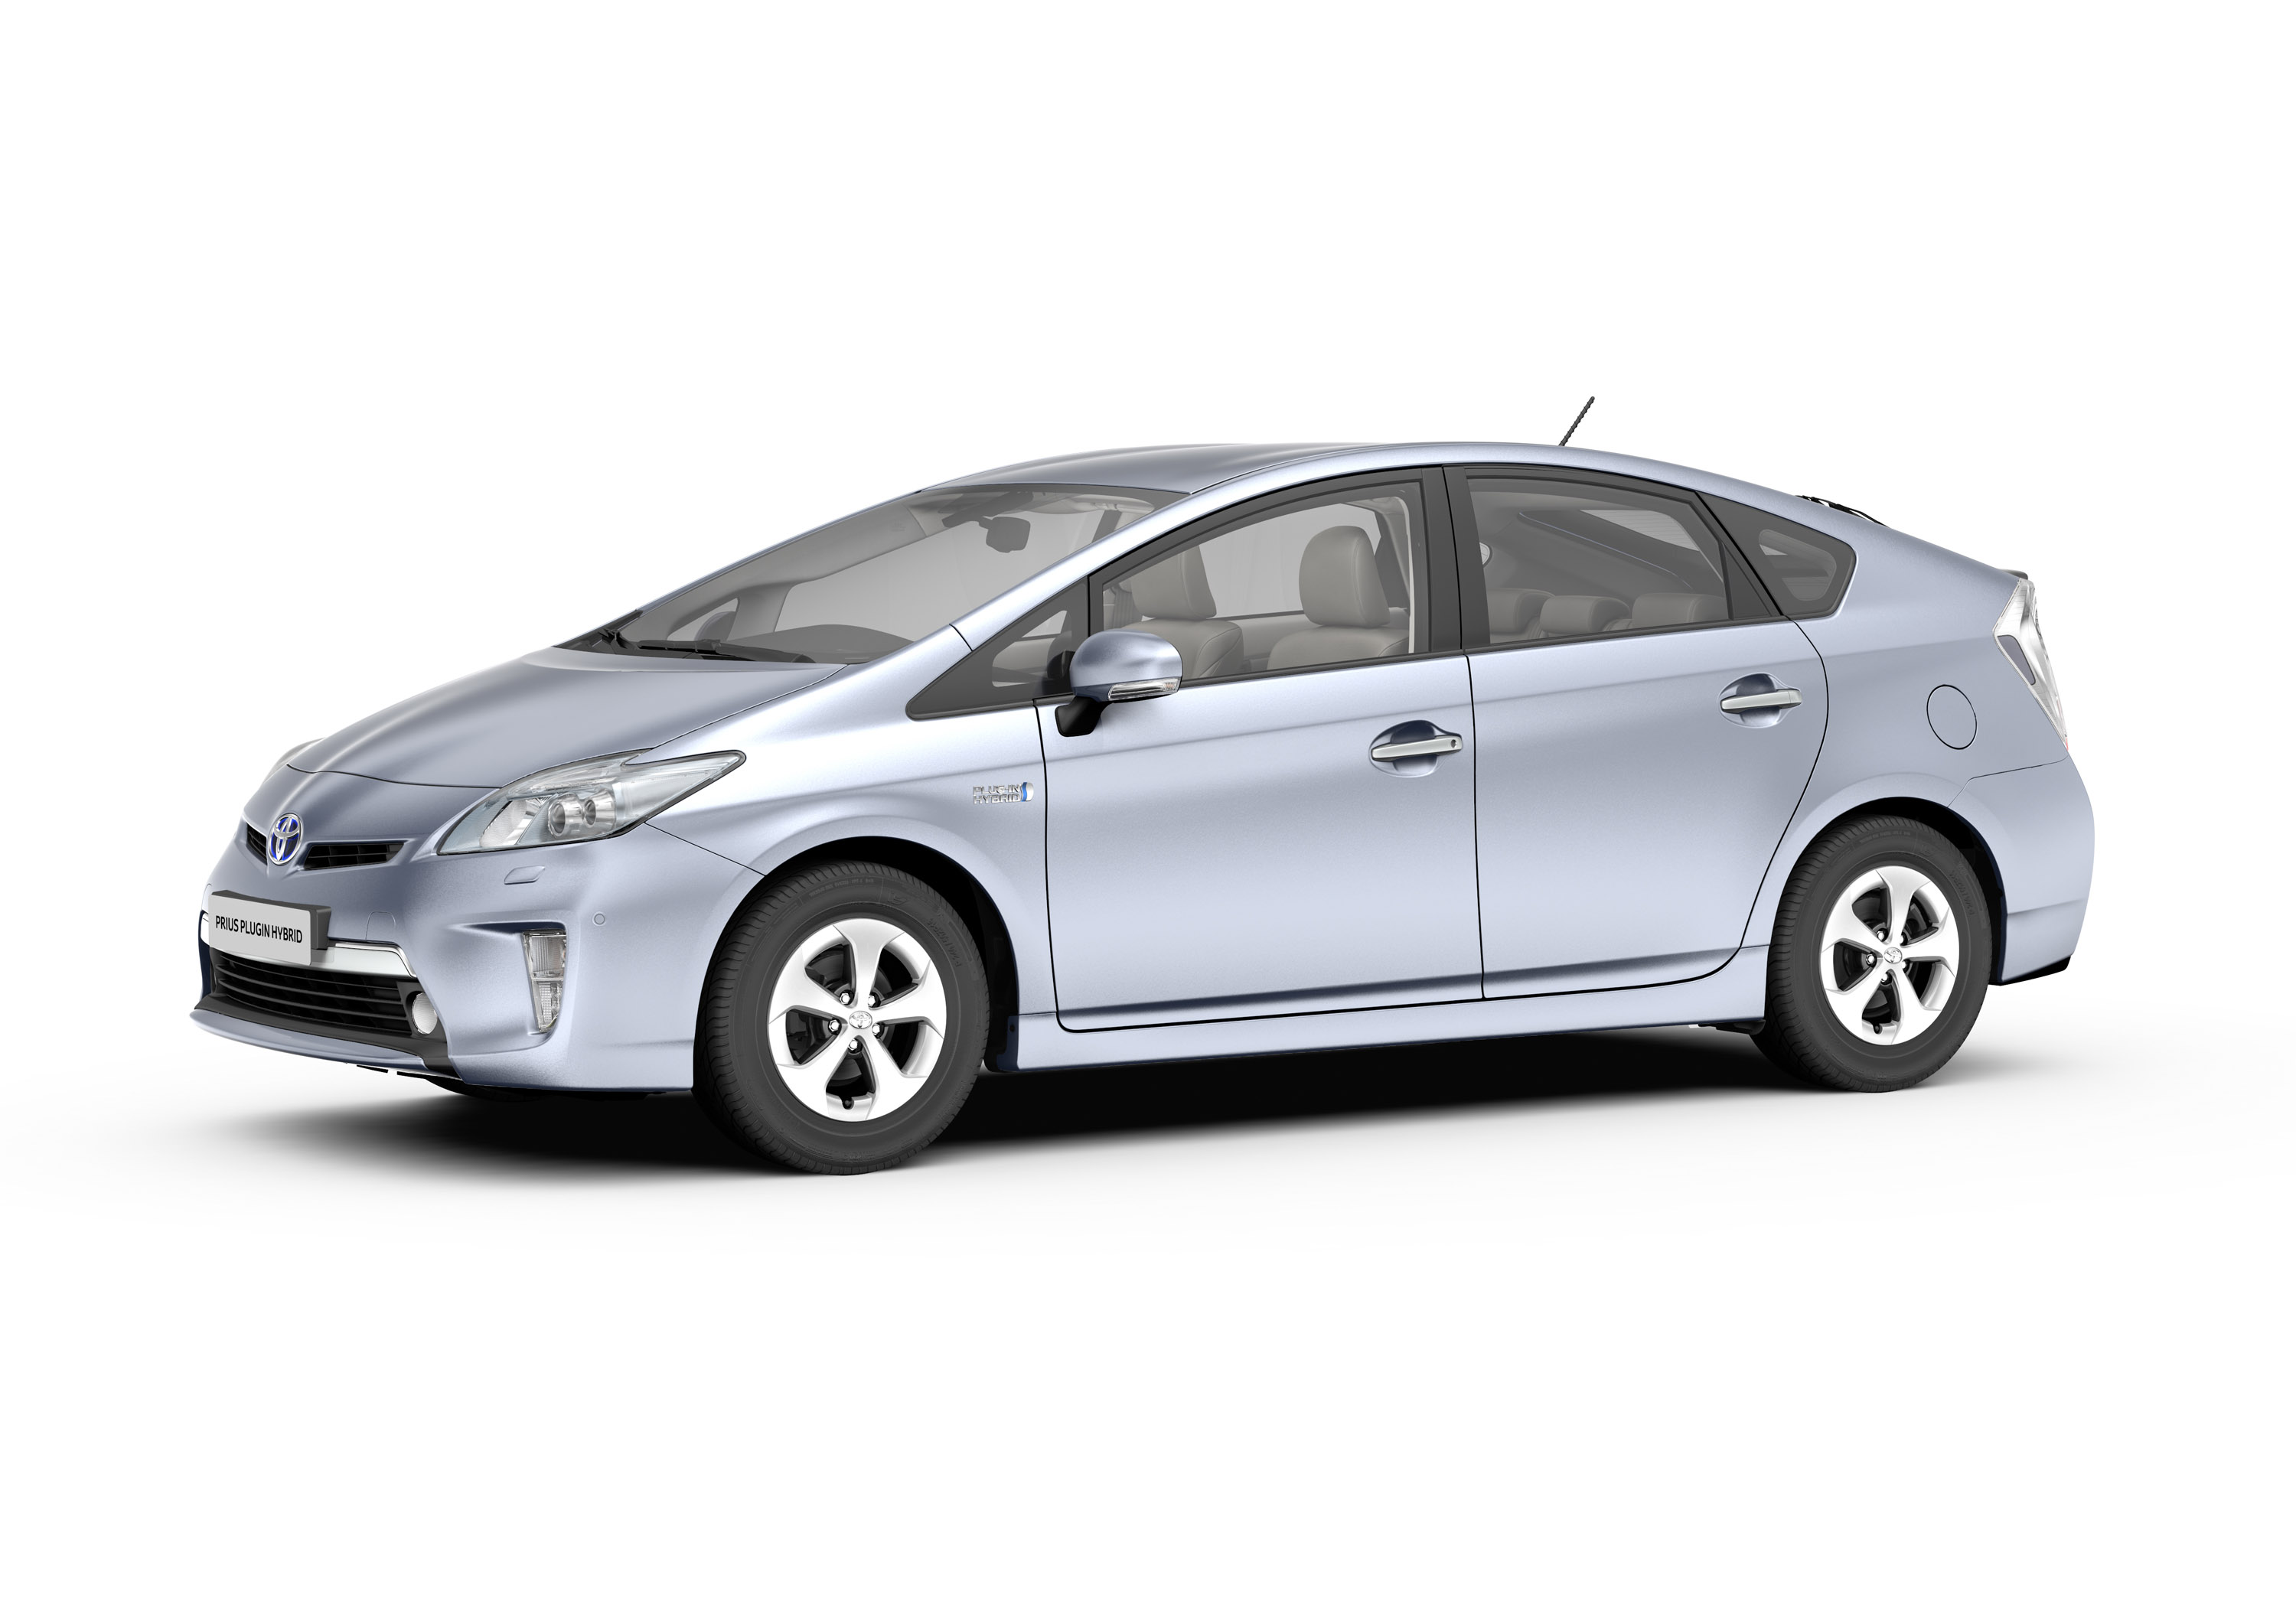 Toyota Prius Plug In Hybrid Electric Vehicle Phev At The